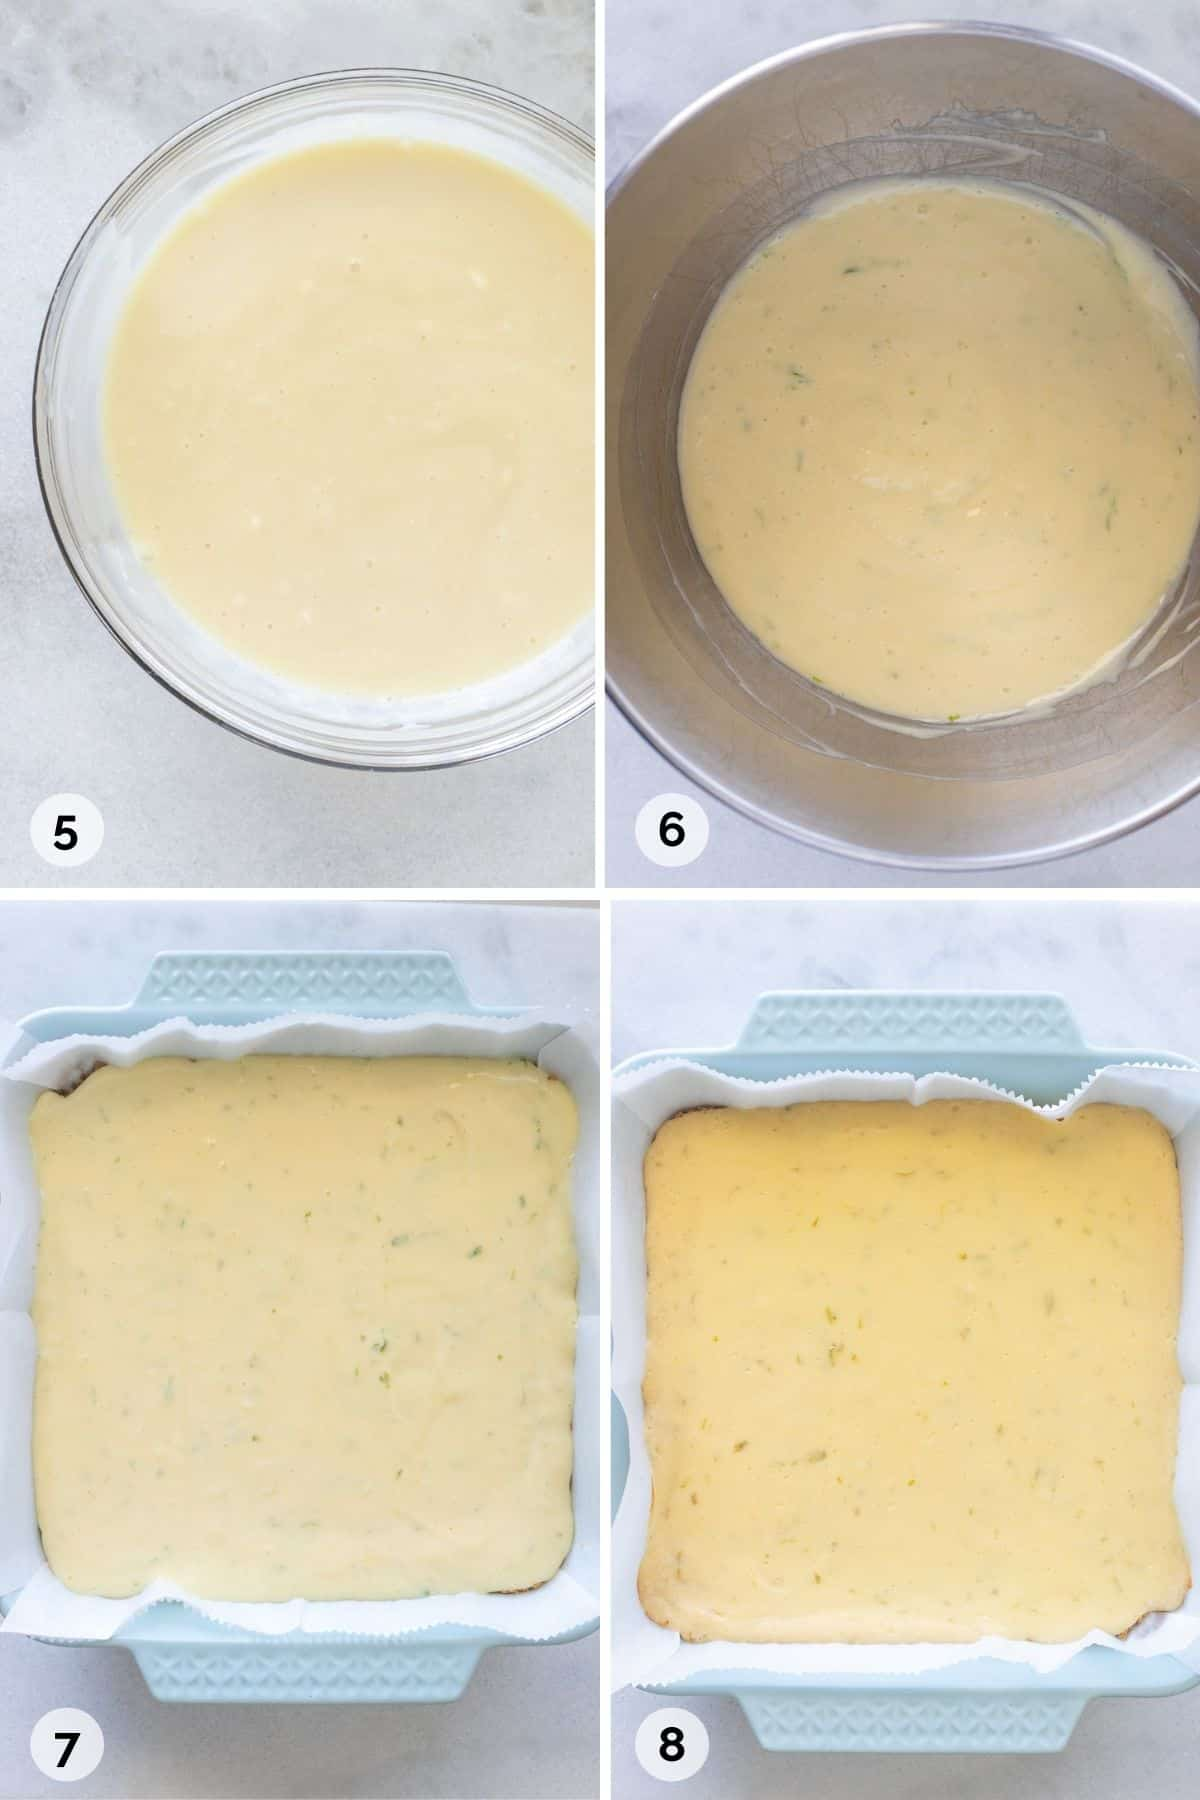 How to make key lime filling with cream cheese and bake the bars.